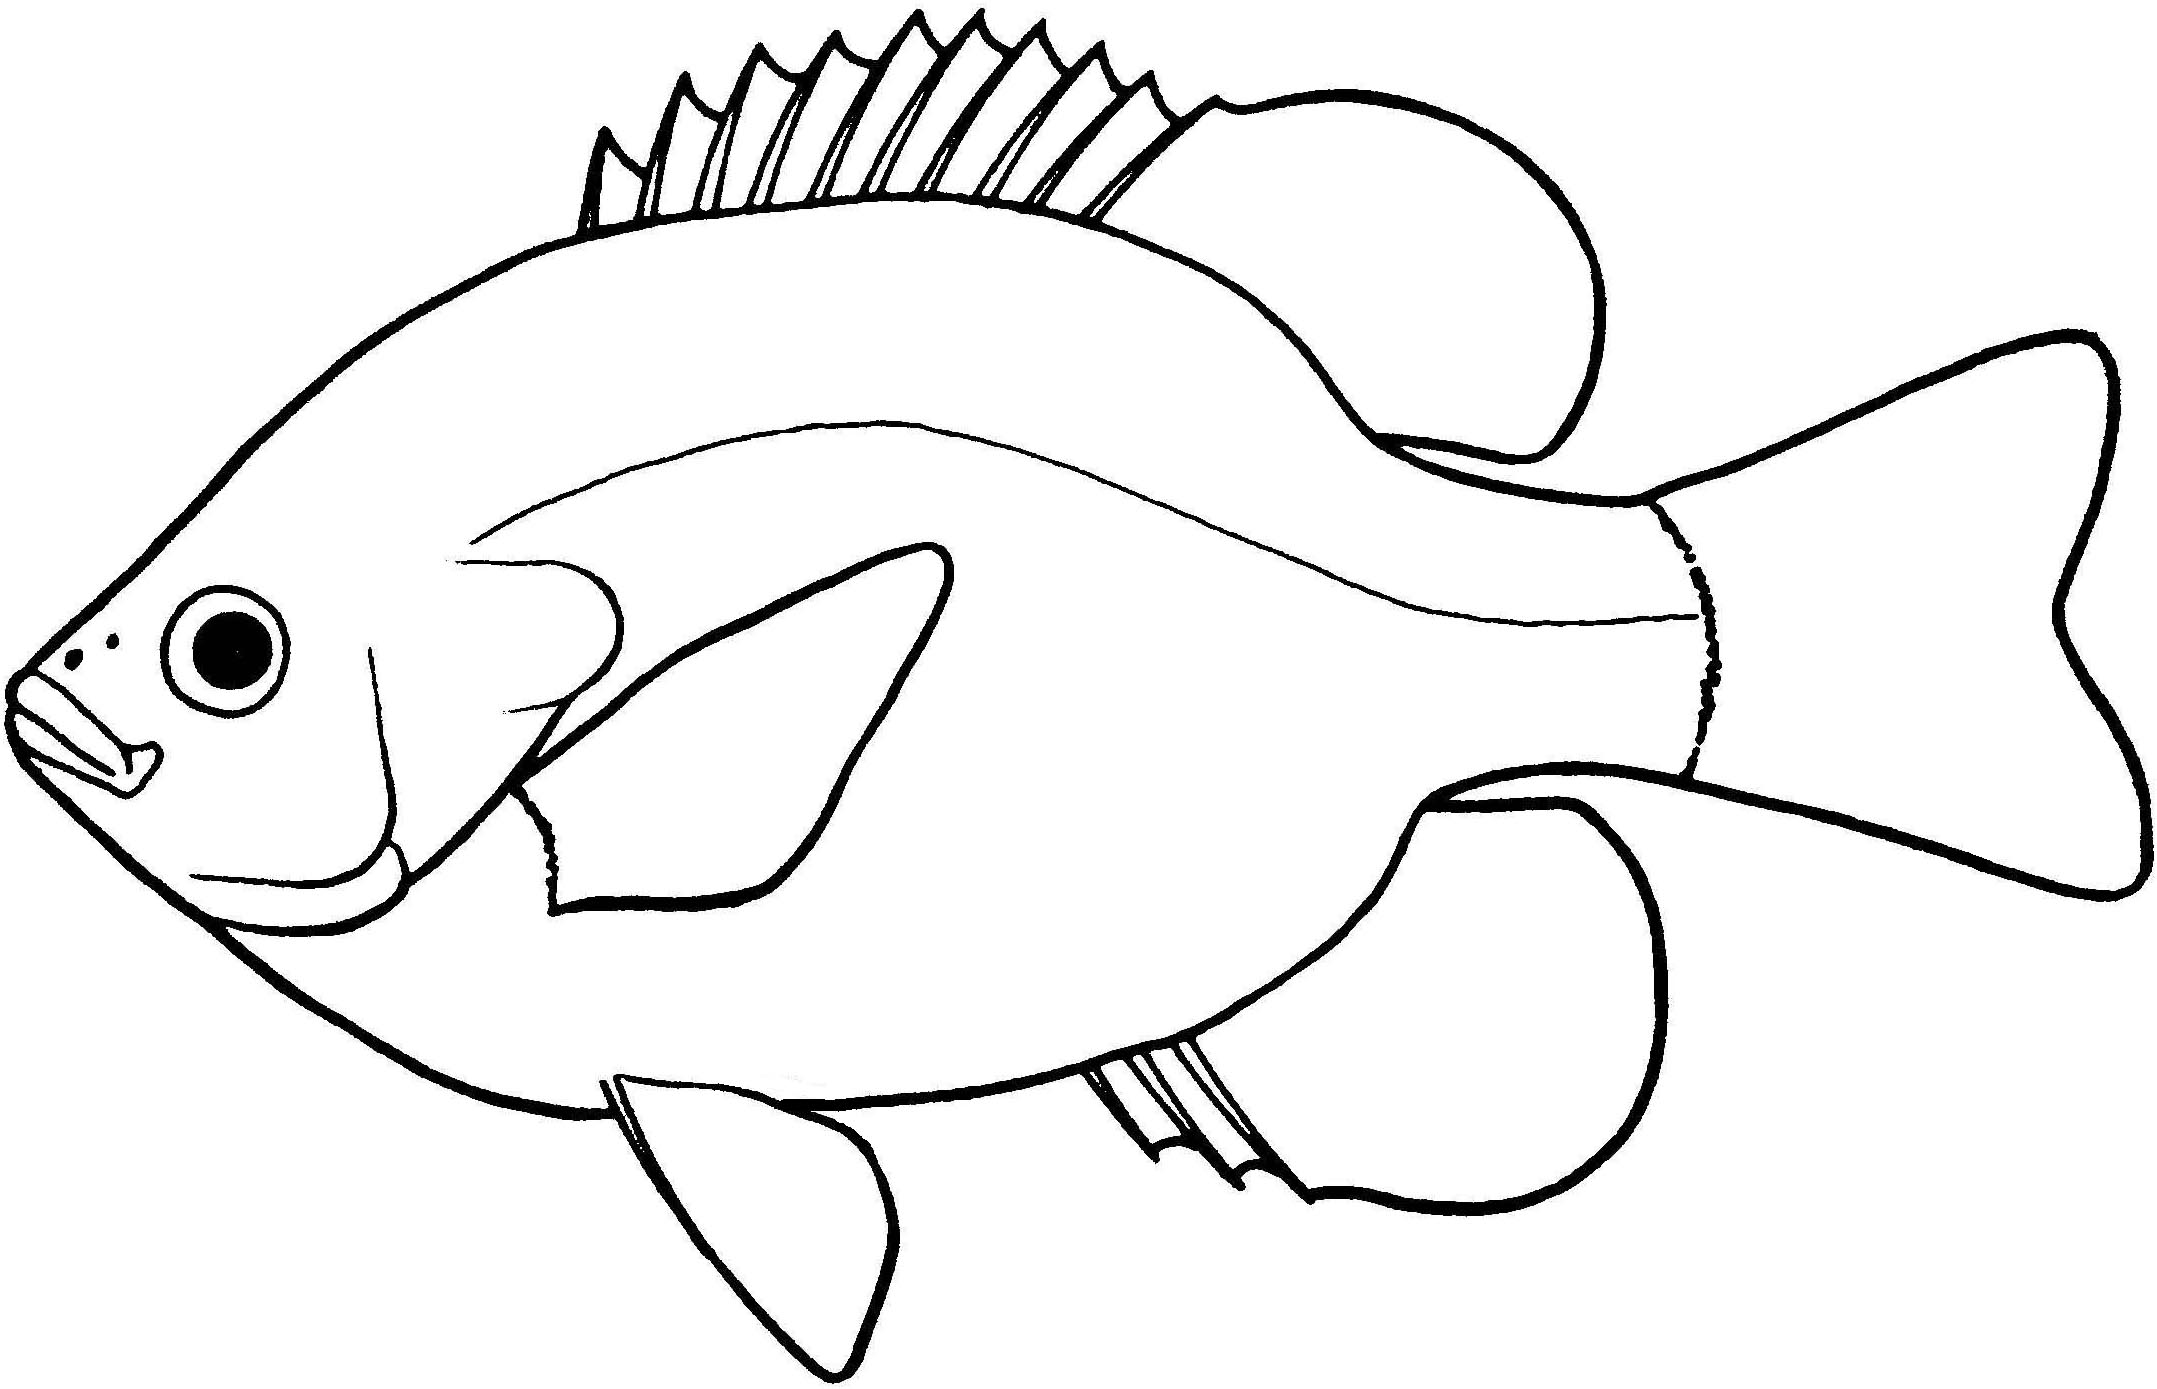 D Line Drawings Locations : Bass fish drawings clipart best